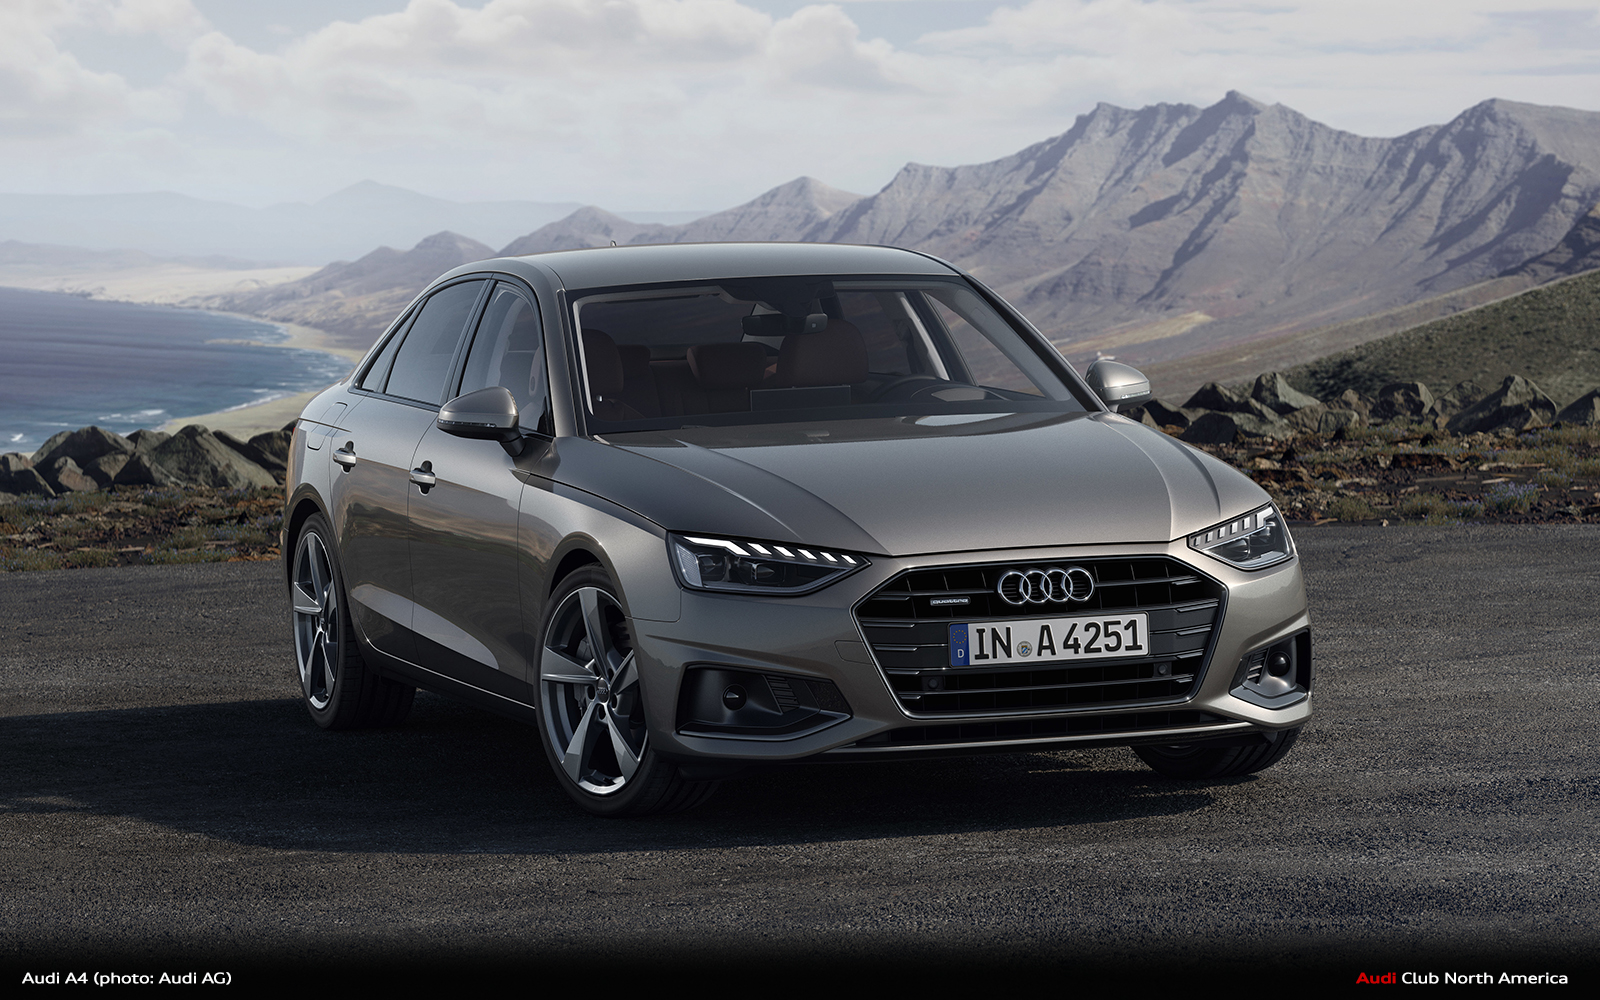 The Audi A4: Even Sportier and Even More Cutting Edge